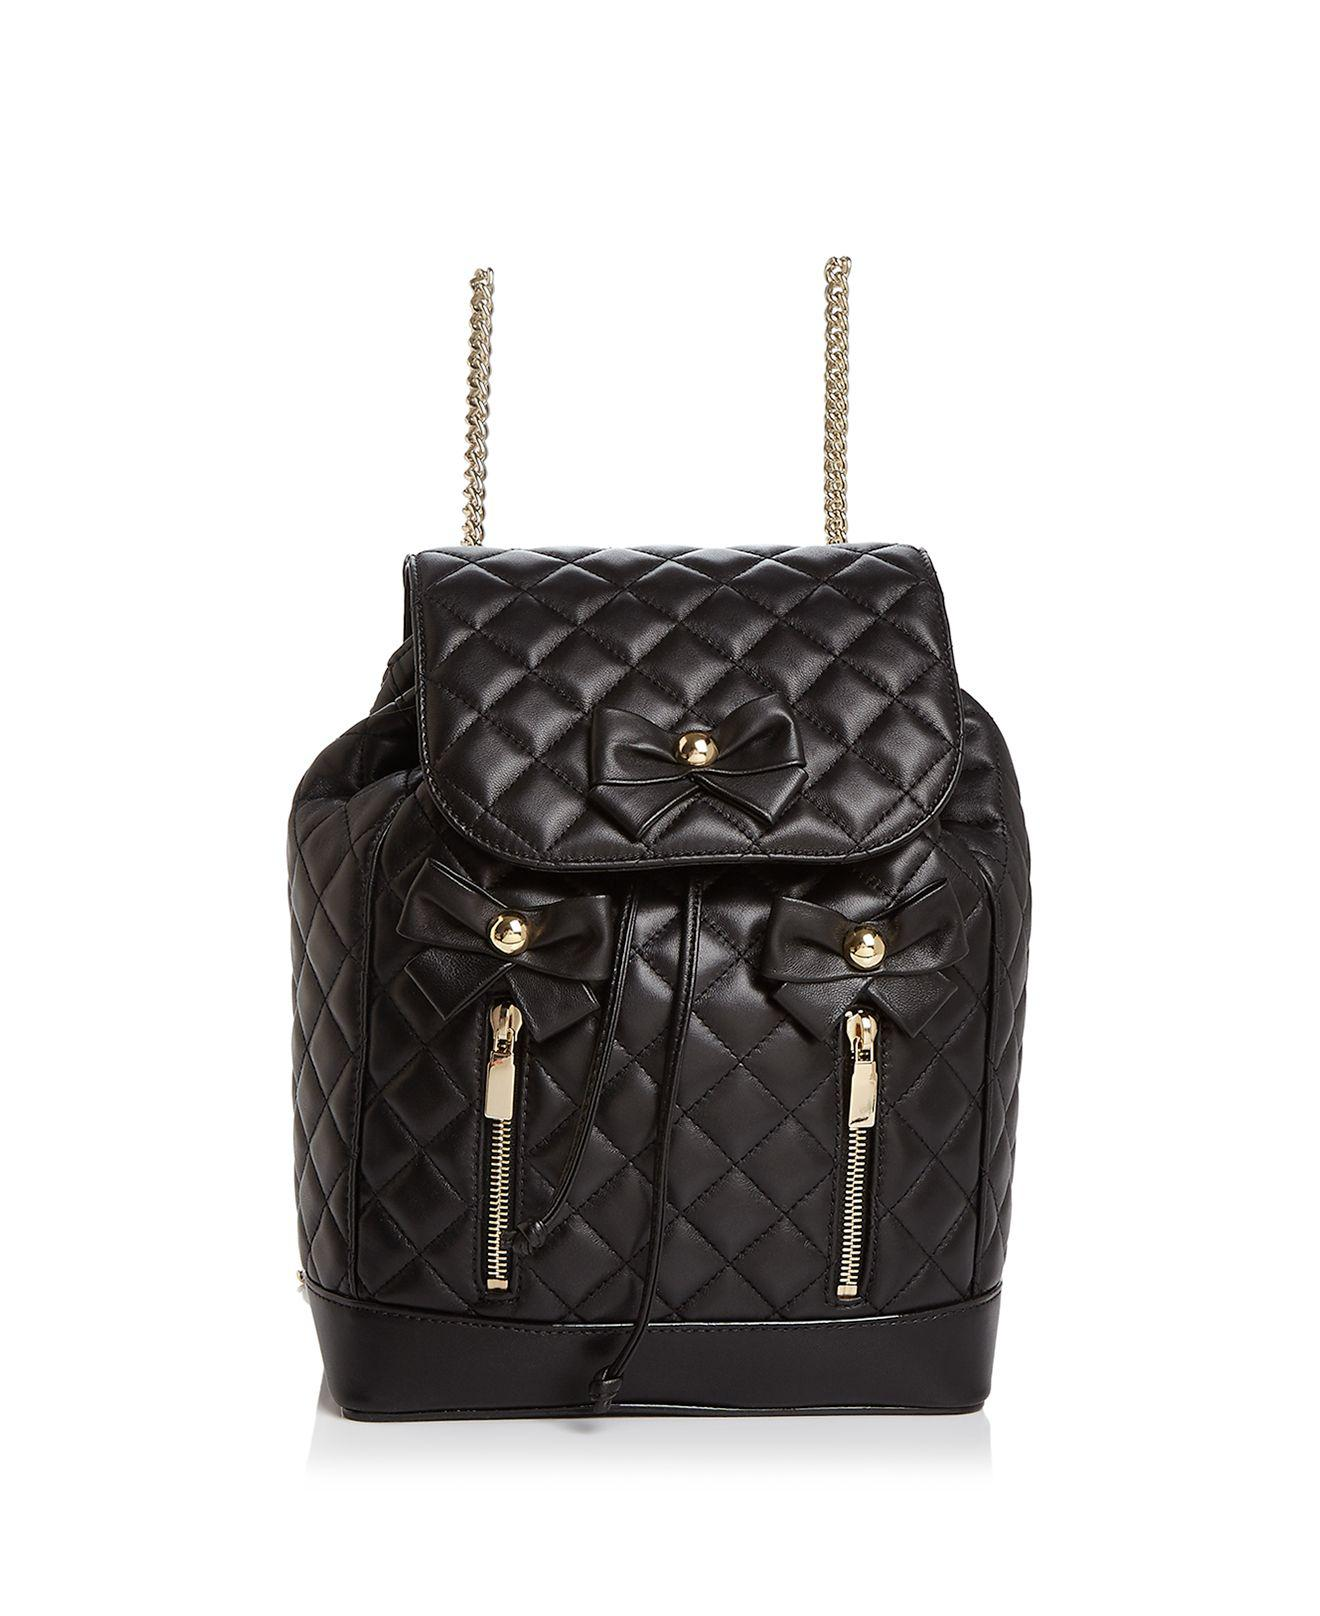 Lyst - Boutique Moschino Bow Quilted Leather Backpack in Black 2d33f3769ebb3